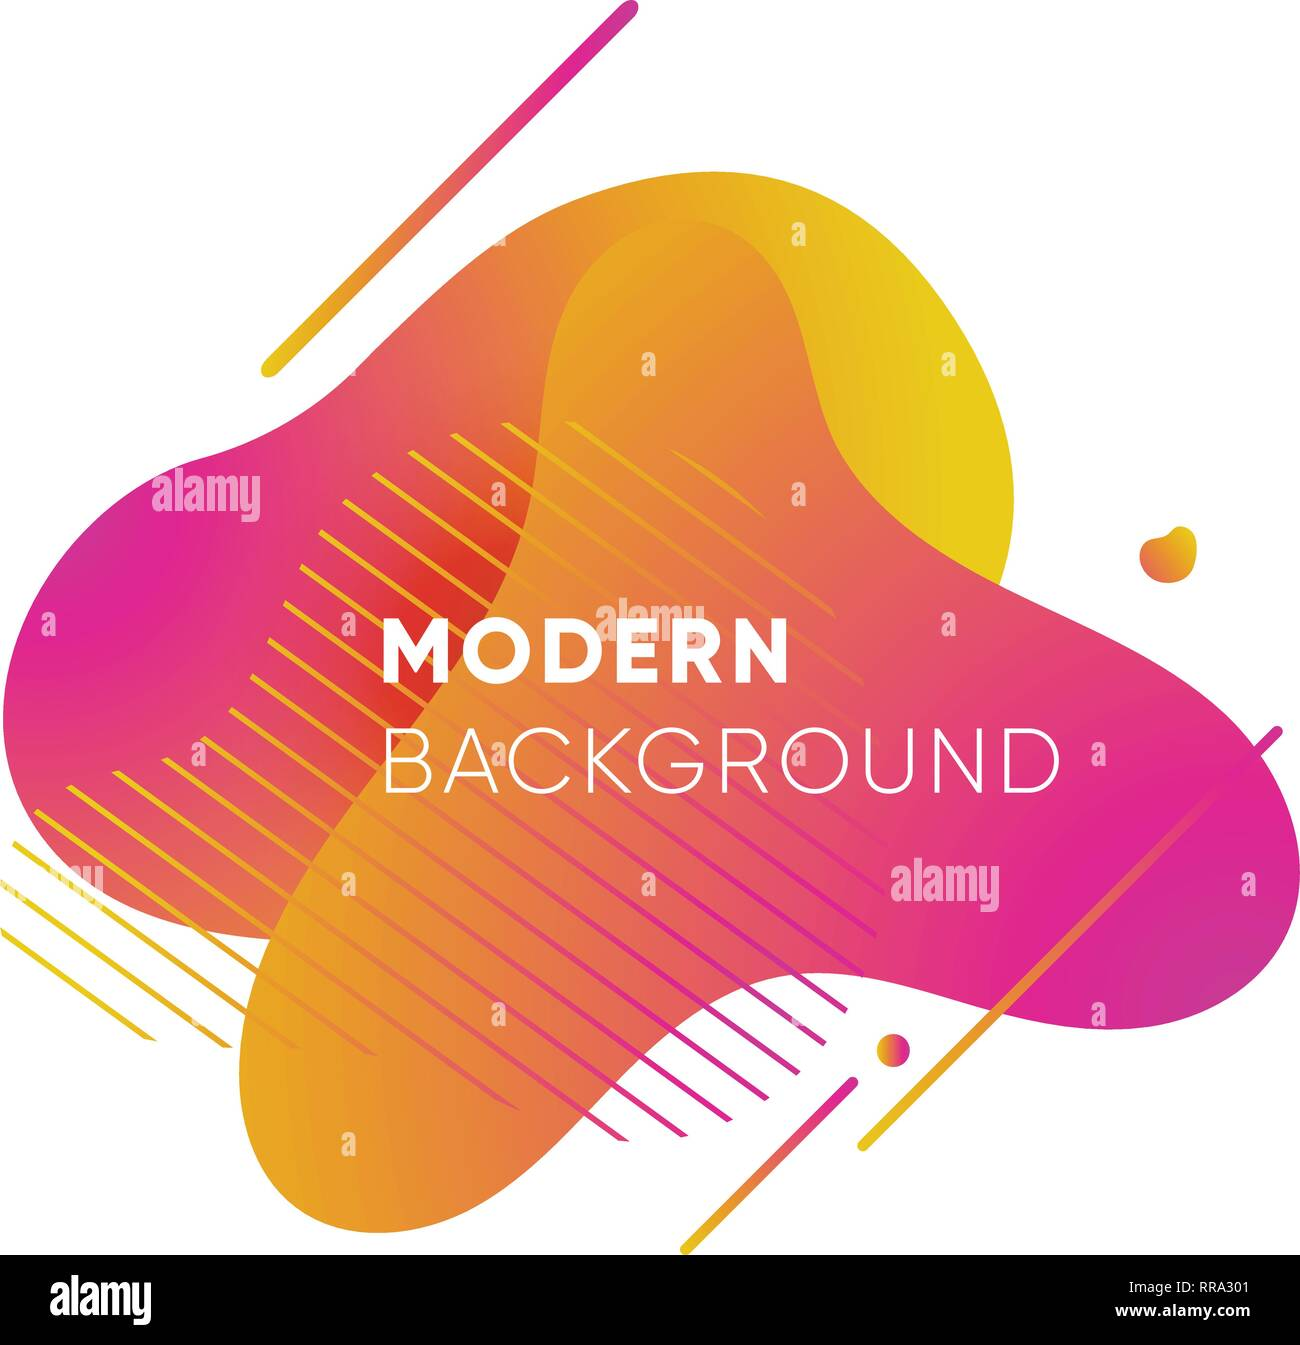 Dynamical colored graphic elements. Gradient abstract banners with flowing liquid shapes. Template for the design of a logo, poster or presentation. - Stock Vector